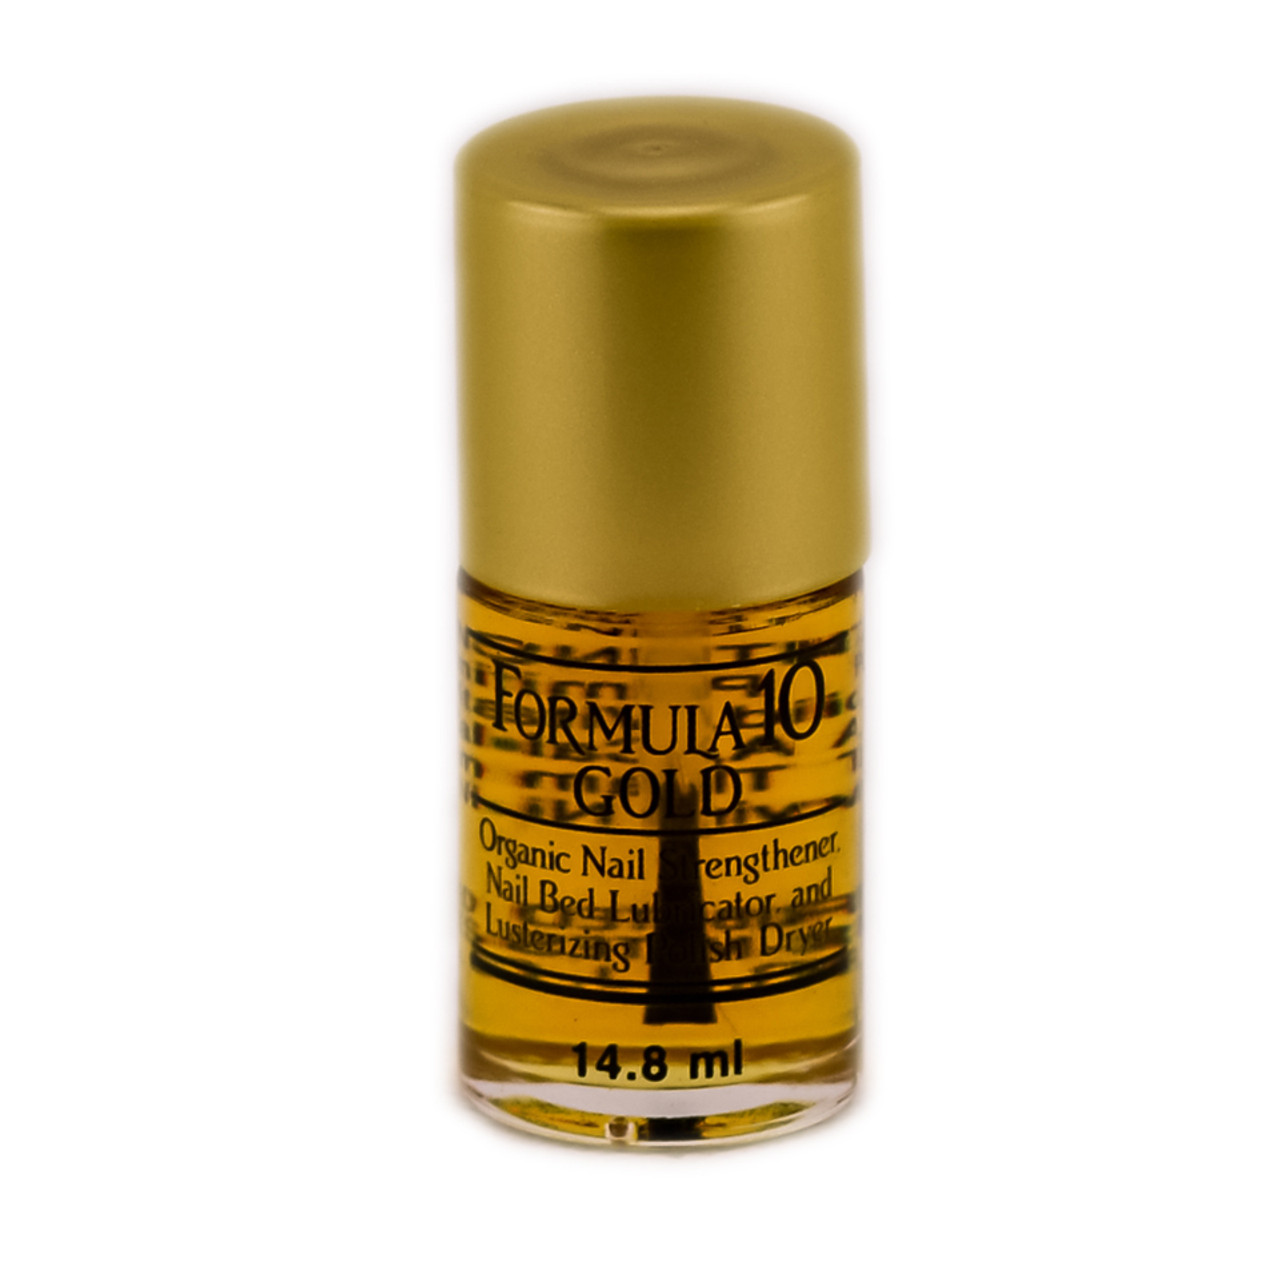 Formula 10 Gold Organic Nail Strengthener - For Nail Bed Lubricator and Polish Dryer - 0.5 oz